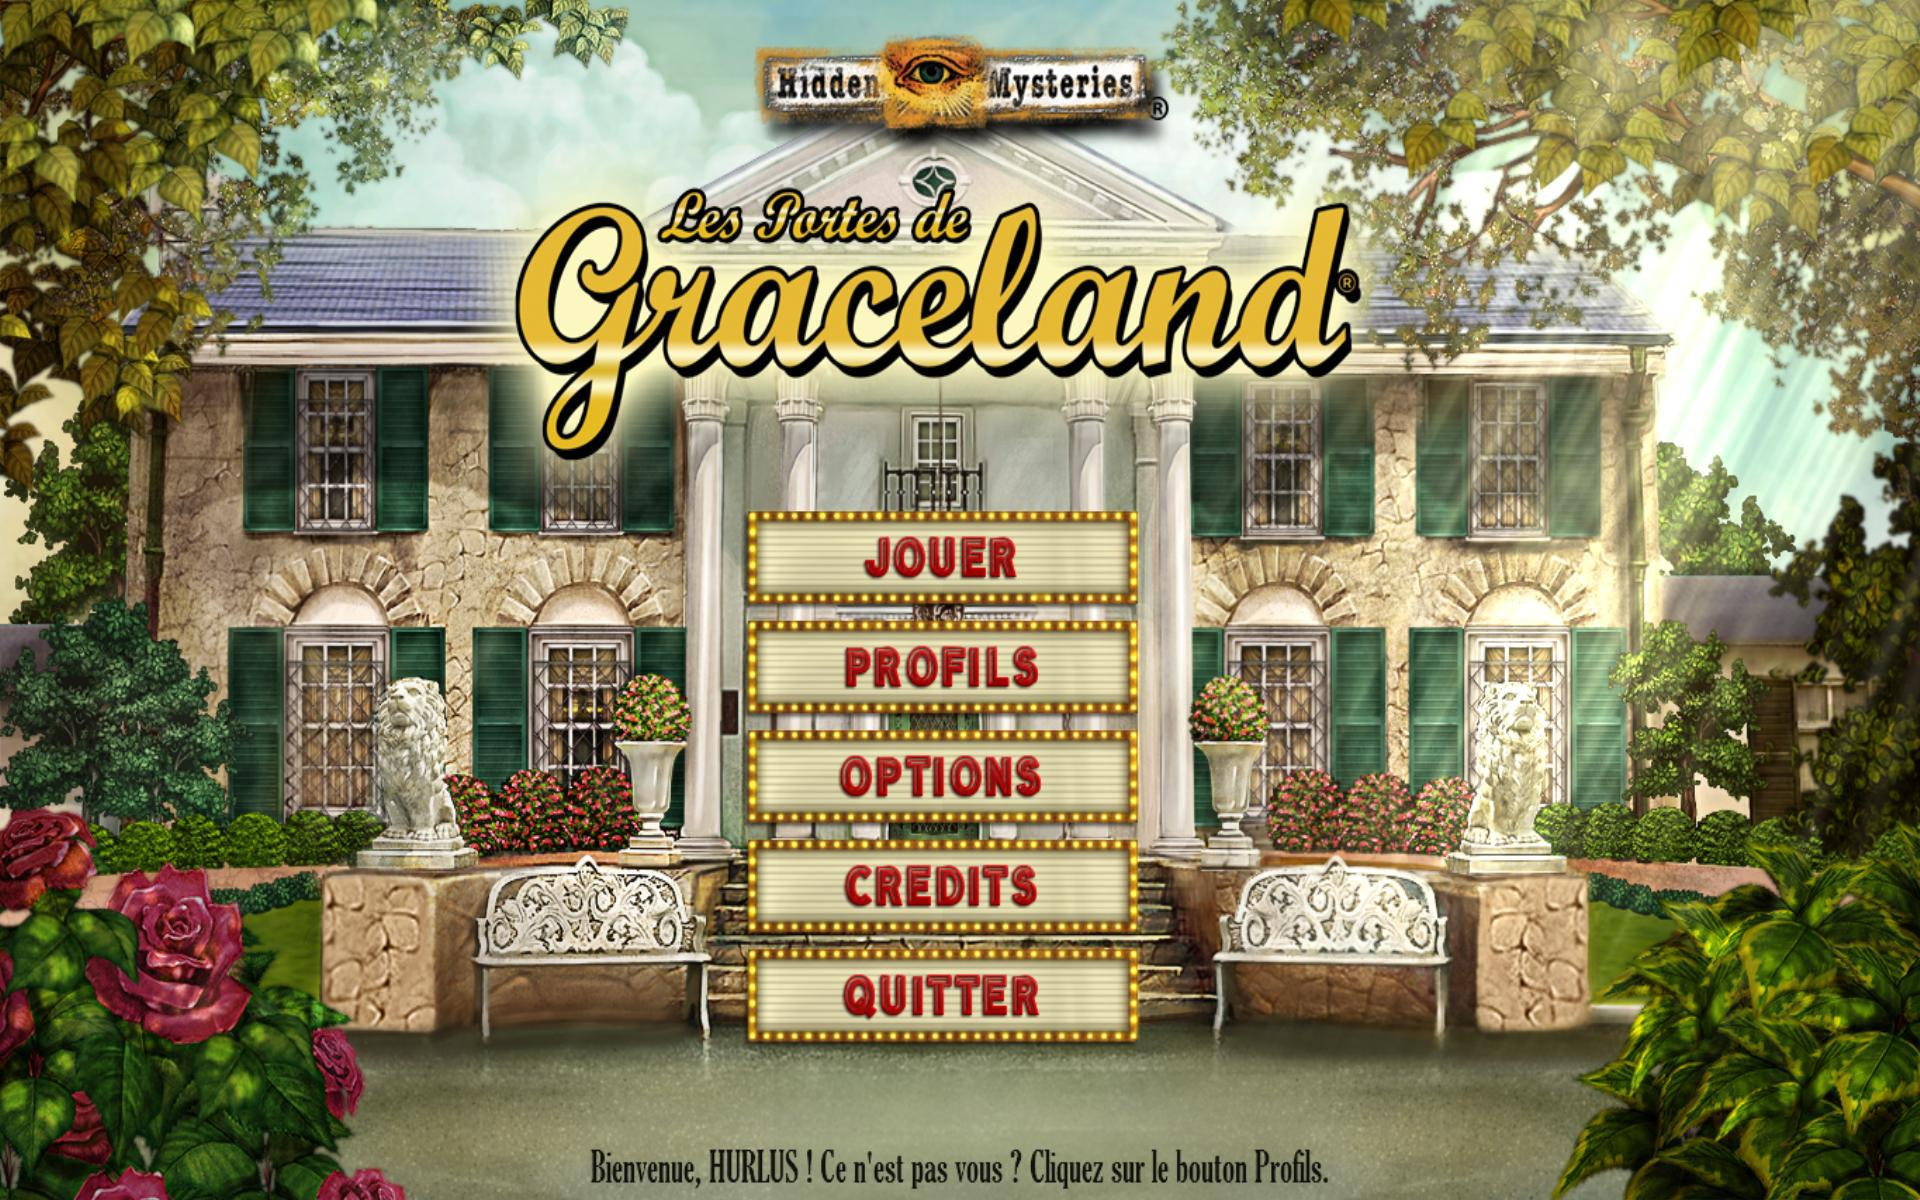 Hidden Mysteries: Les Portes de Graceland [PC] [MULTI]